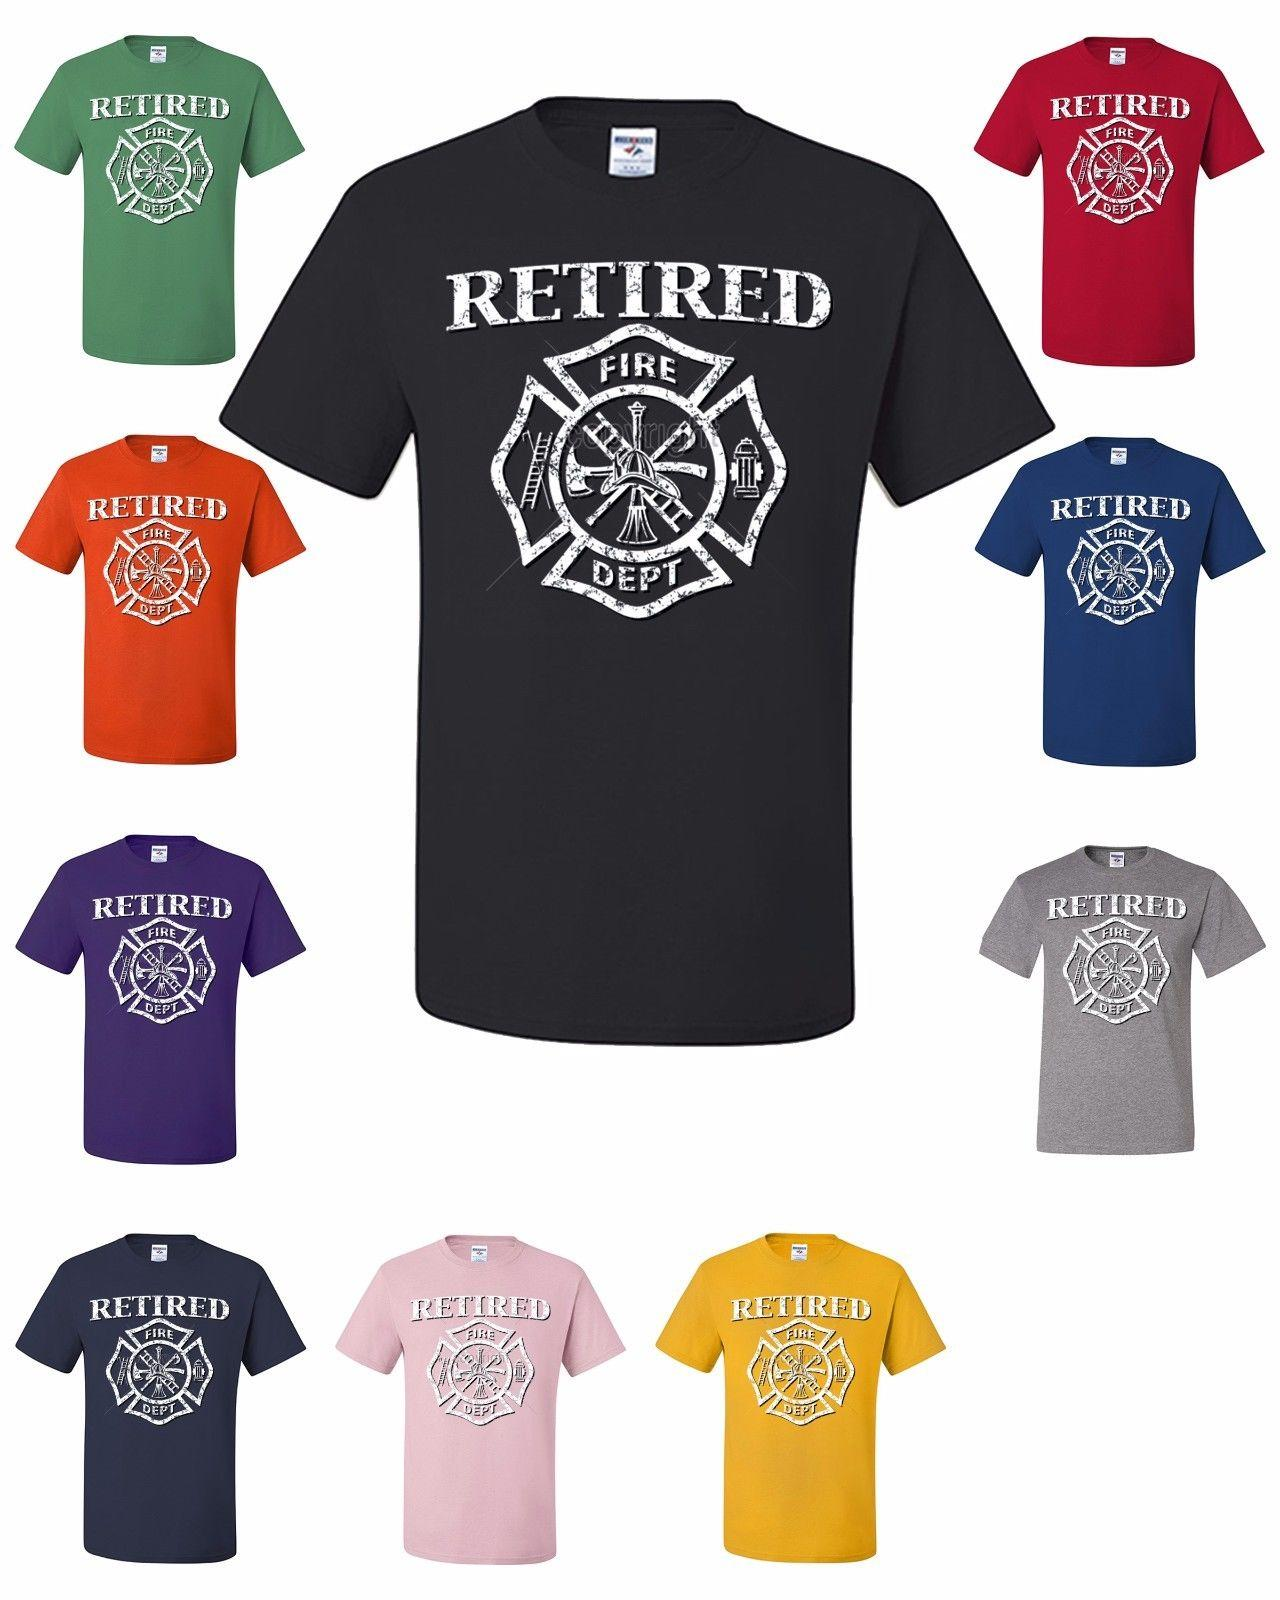 Retired Firefighter T-Shirt Fireman Gift Fire Dept Badge Volunteer Tee  Shirt Custom t shirt logo text photo Mens Womens